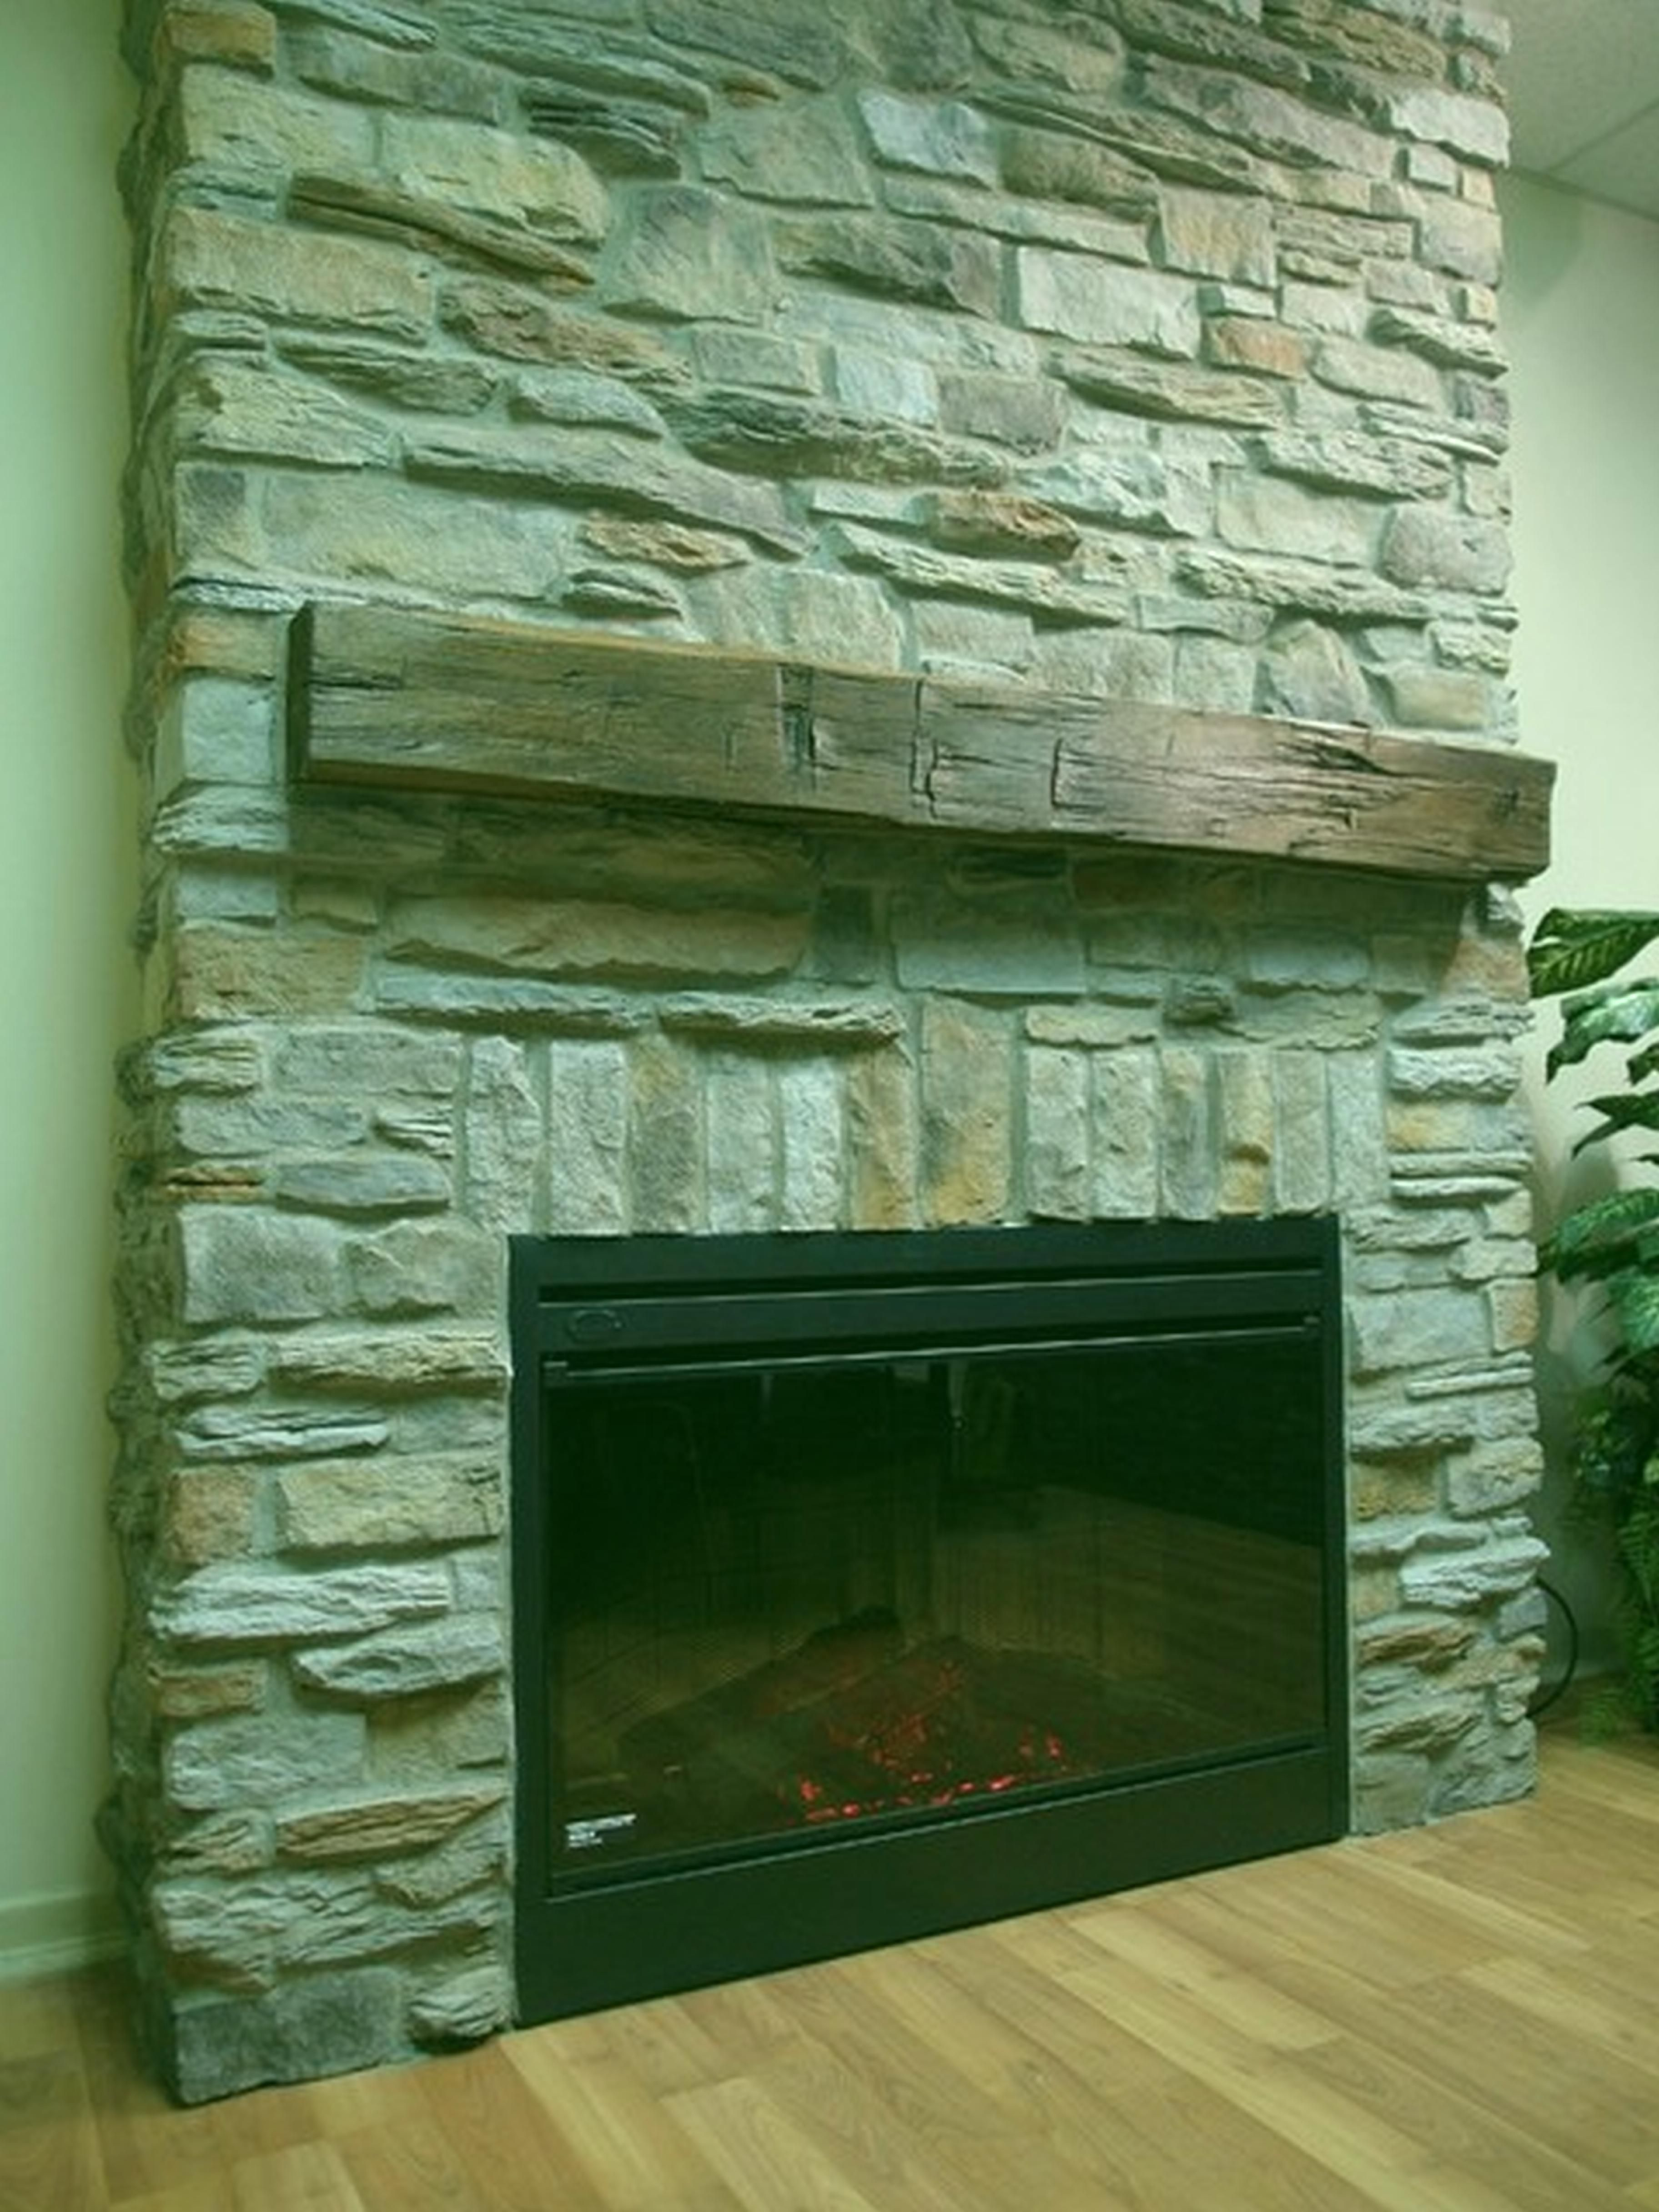 df5c793798bfef63990c0b9dd11ac12c Top Result 53 Inspirational Outside Stone Fireplace